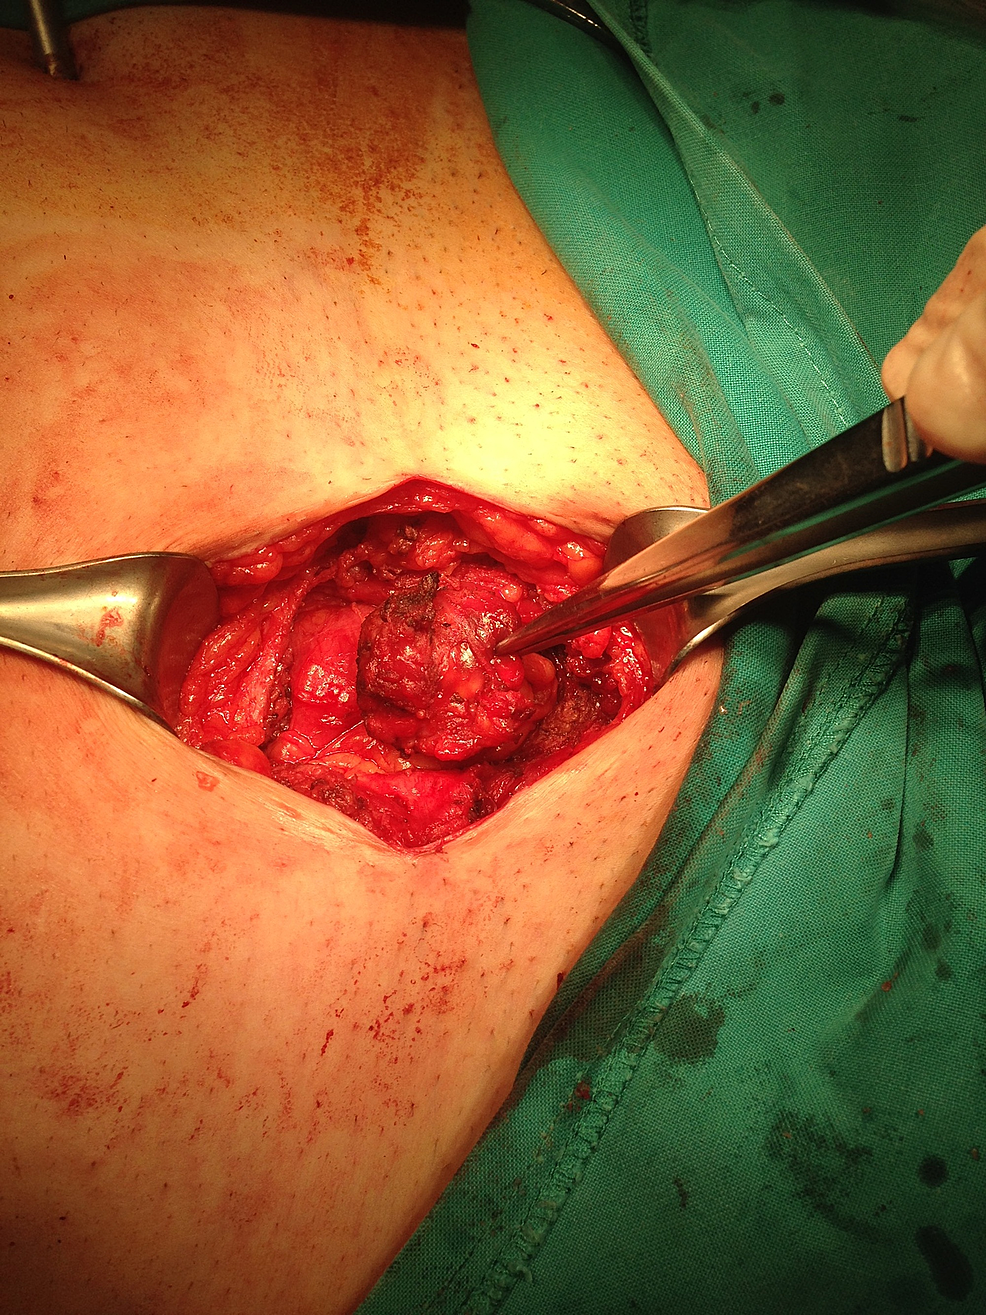 Intraoperative-image-showing-the-endometrioma-in-the-subcutaneous-tissue-of-the-abdominal-wall.